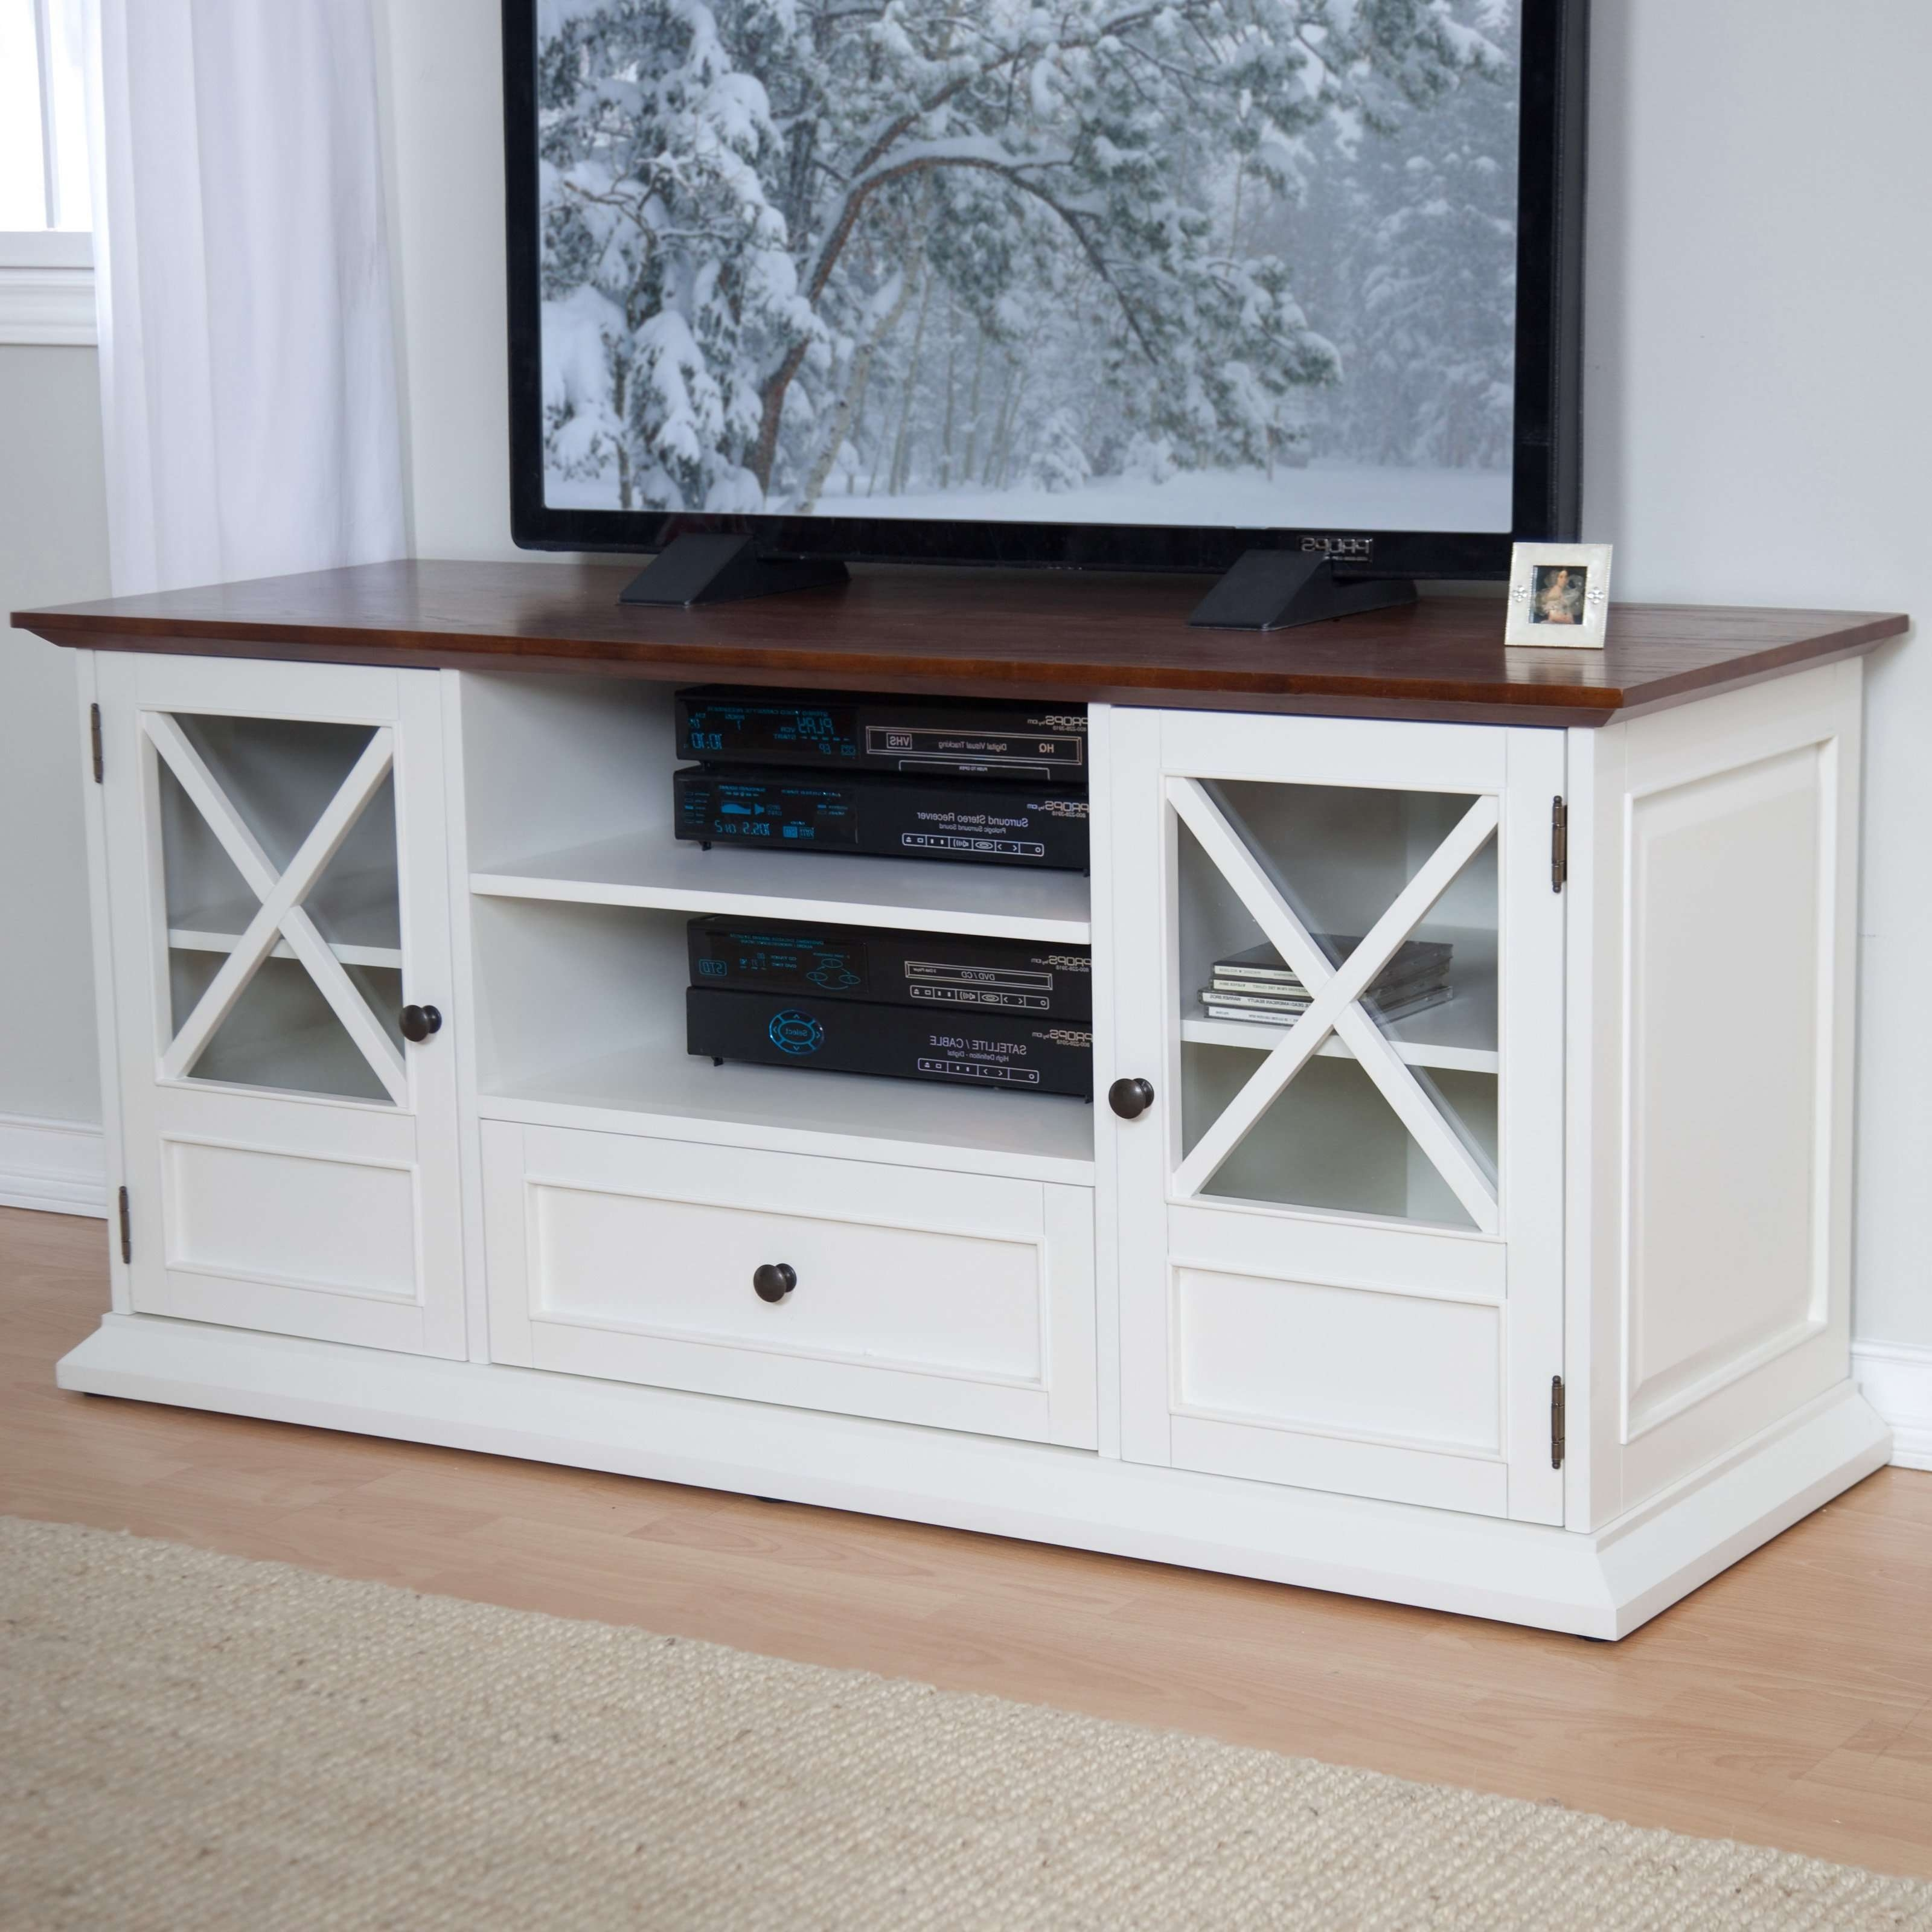 Tv Stands & Entertainment Centers | Hayneedle Within Rustic White Tv Stands (View 15 of 15)